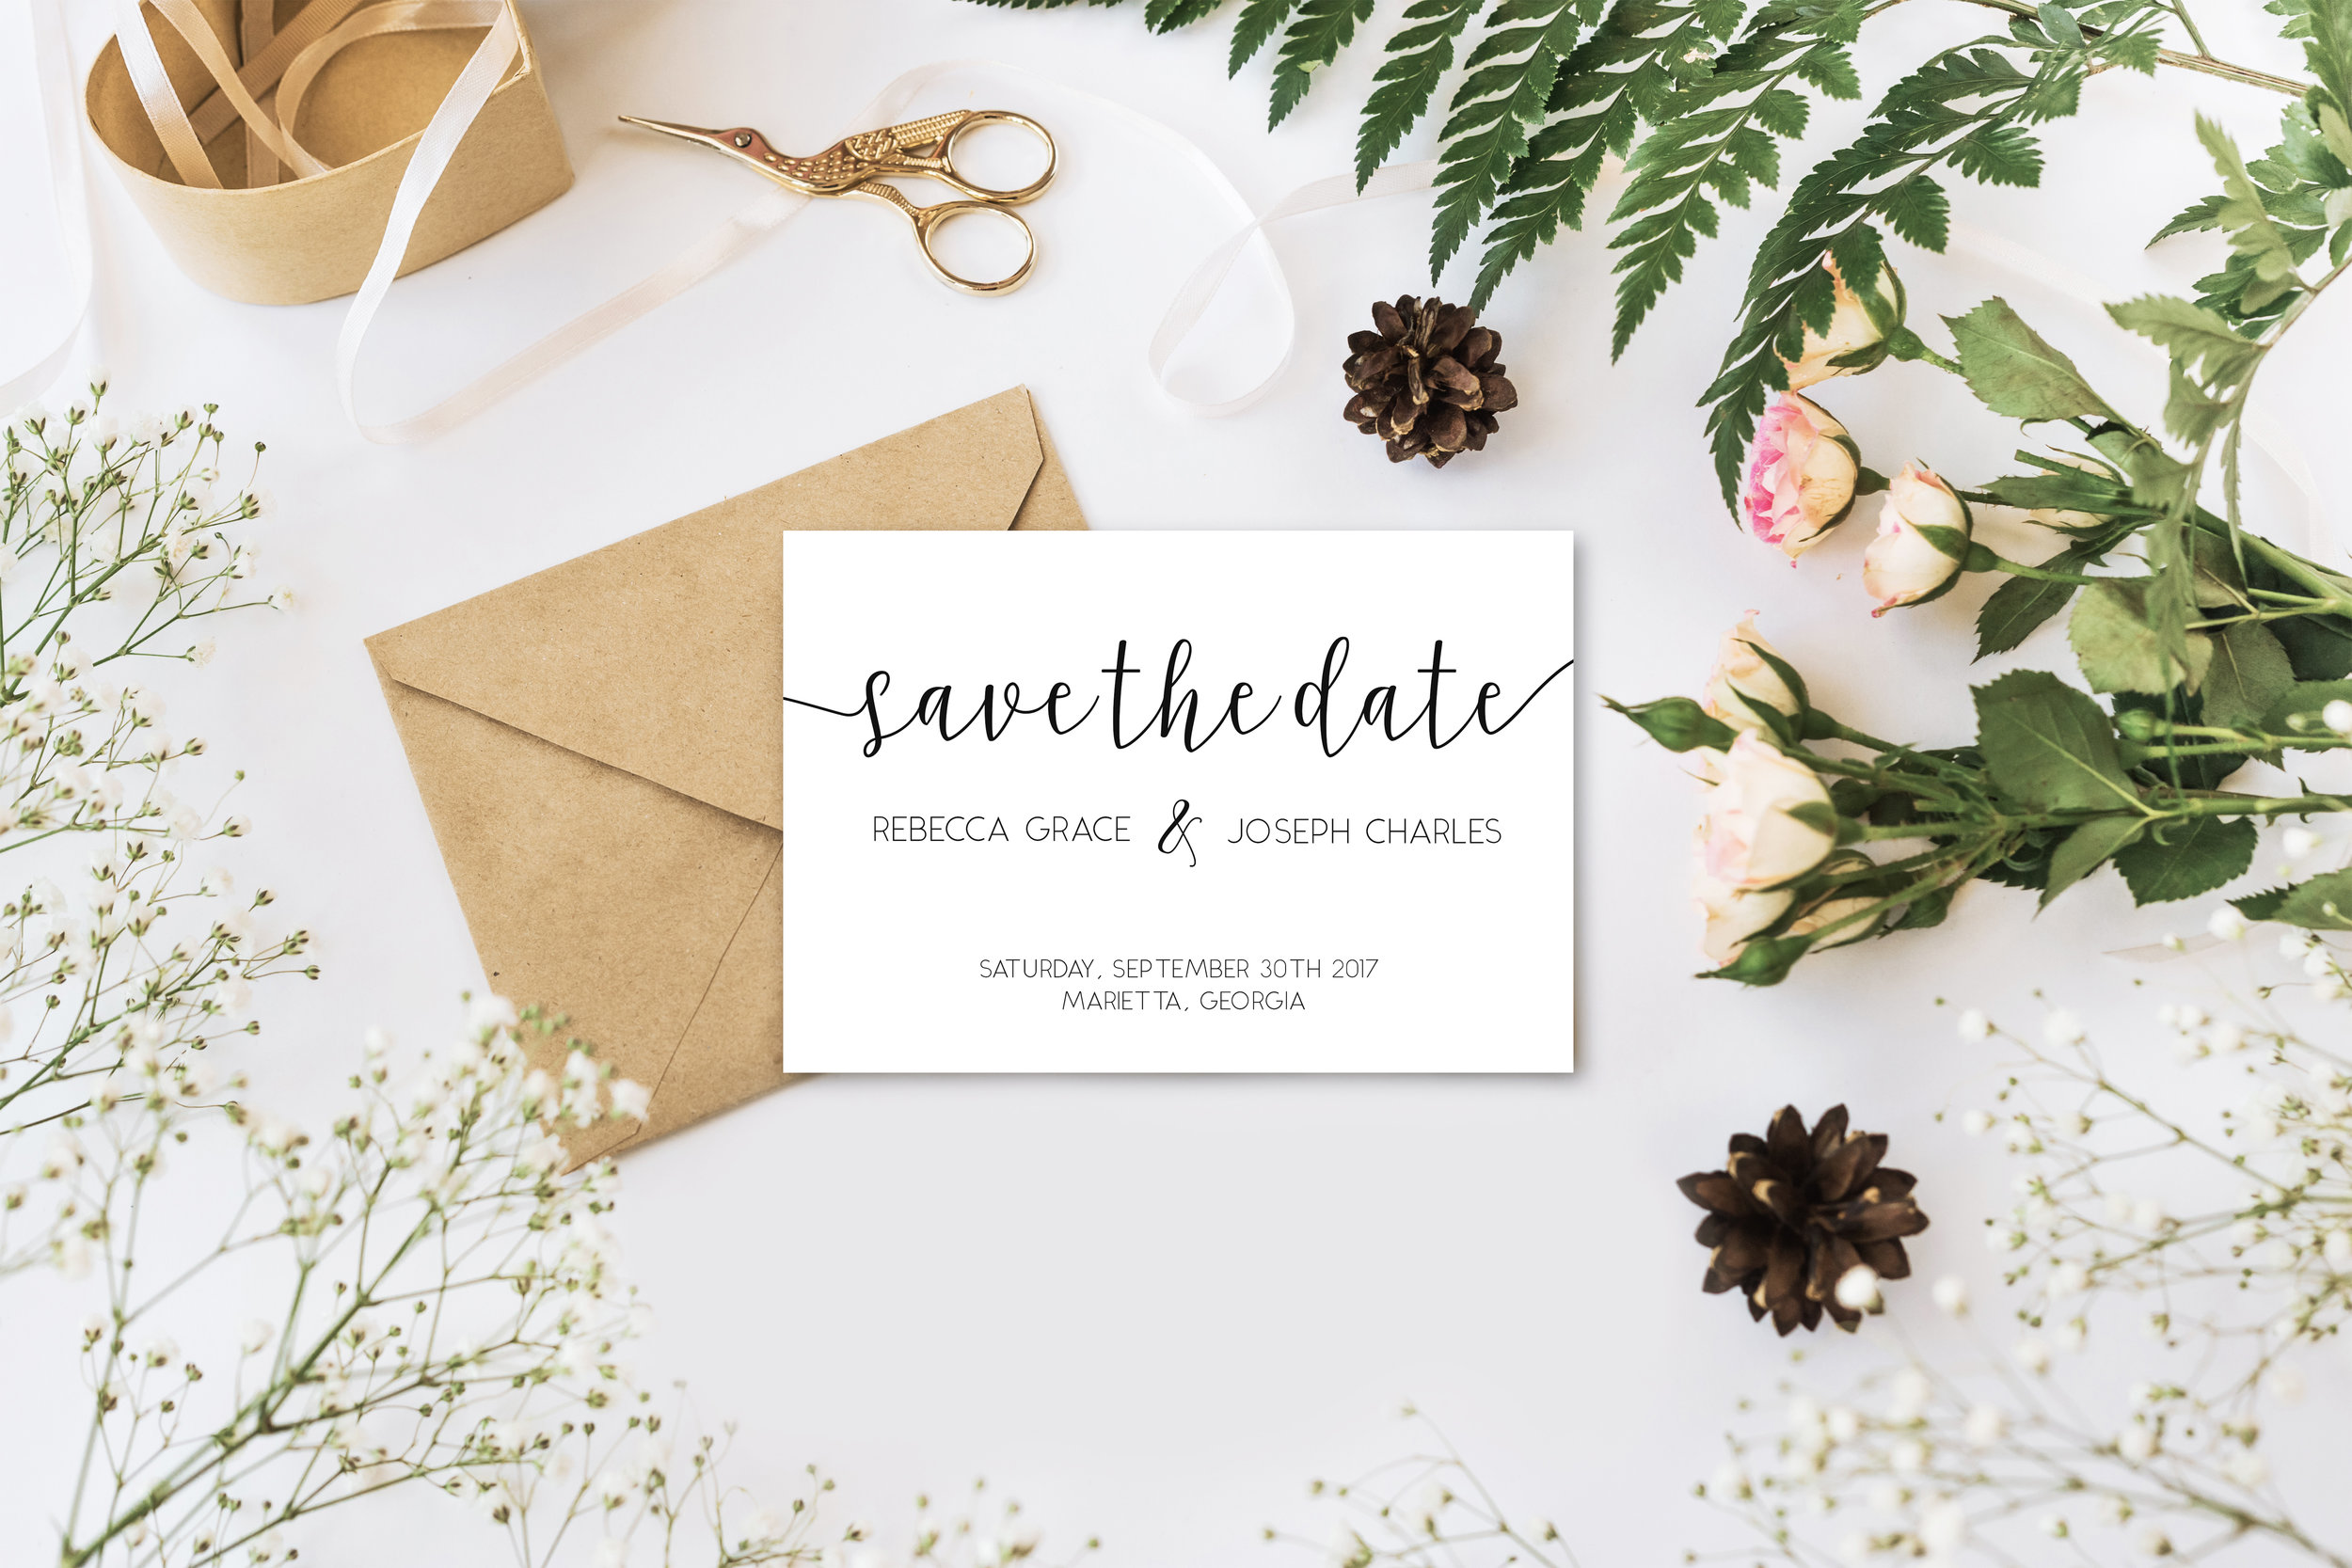 Save the Date Listing Image.jpg